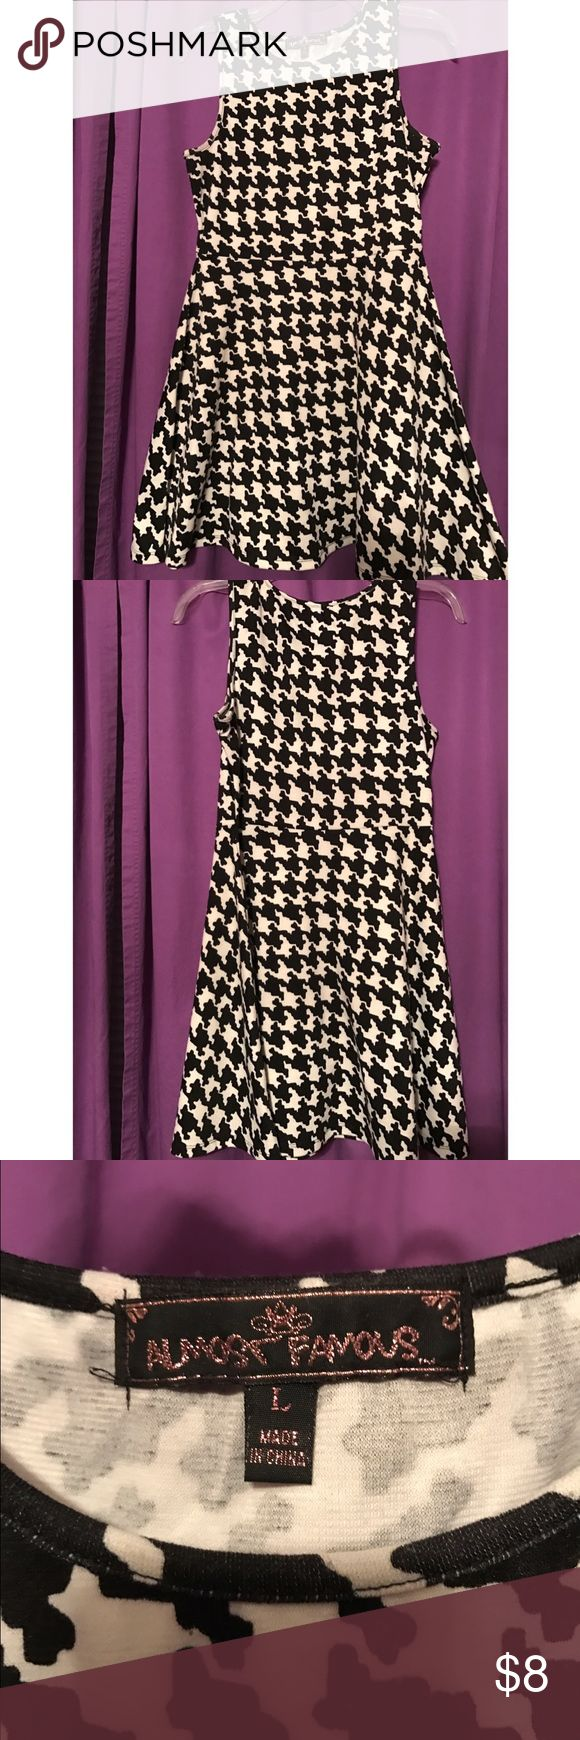 Black and white cocktail dress Fitted top half with skater skirt bottom half. Great party dress Almost Famous Dresses